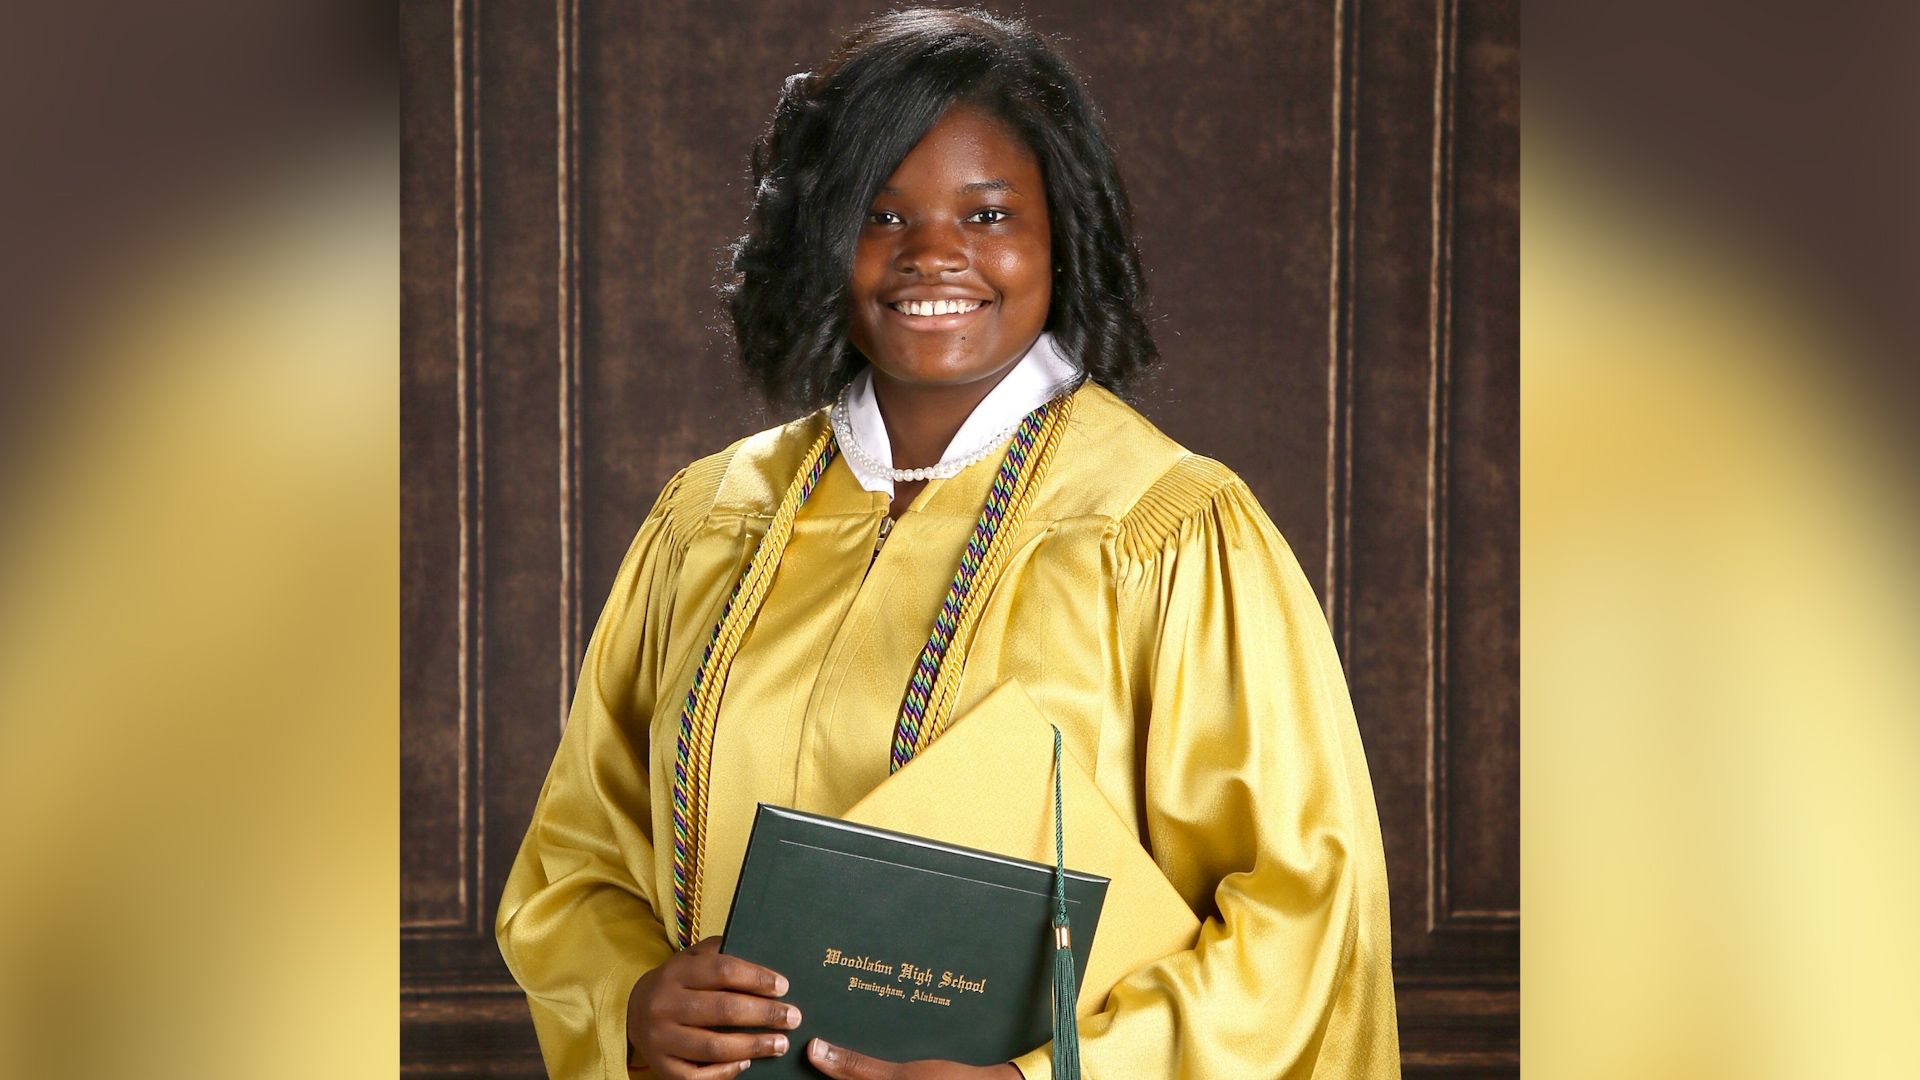 Woodlawn H.S. student to graduate with exceptionally high honors, nearly finished with college